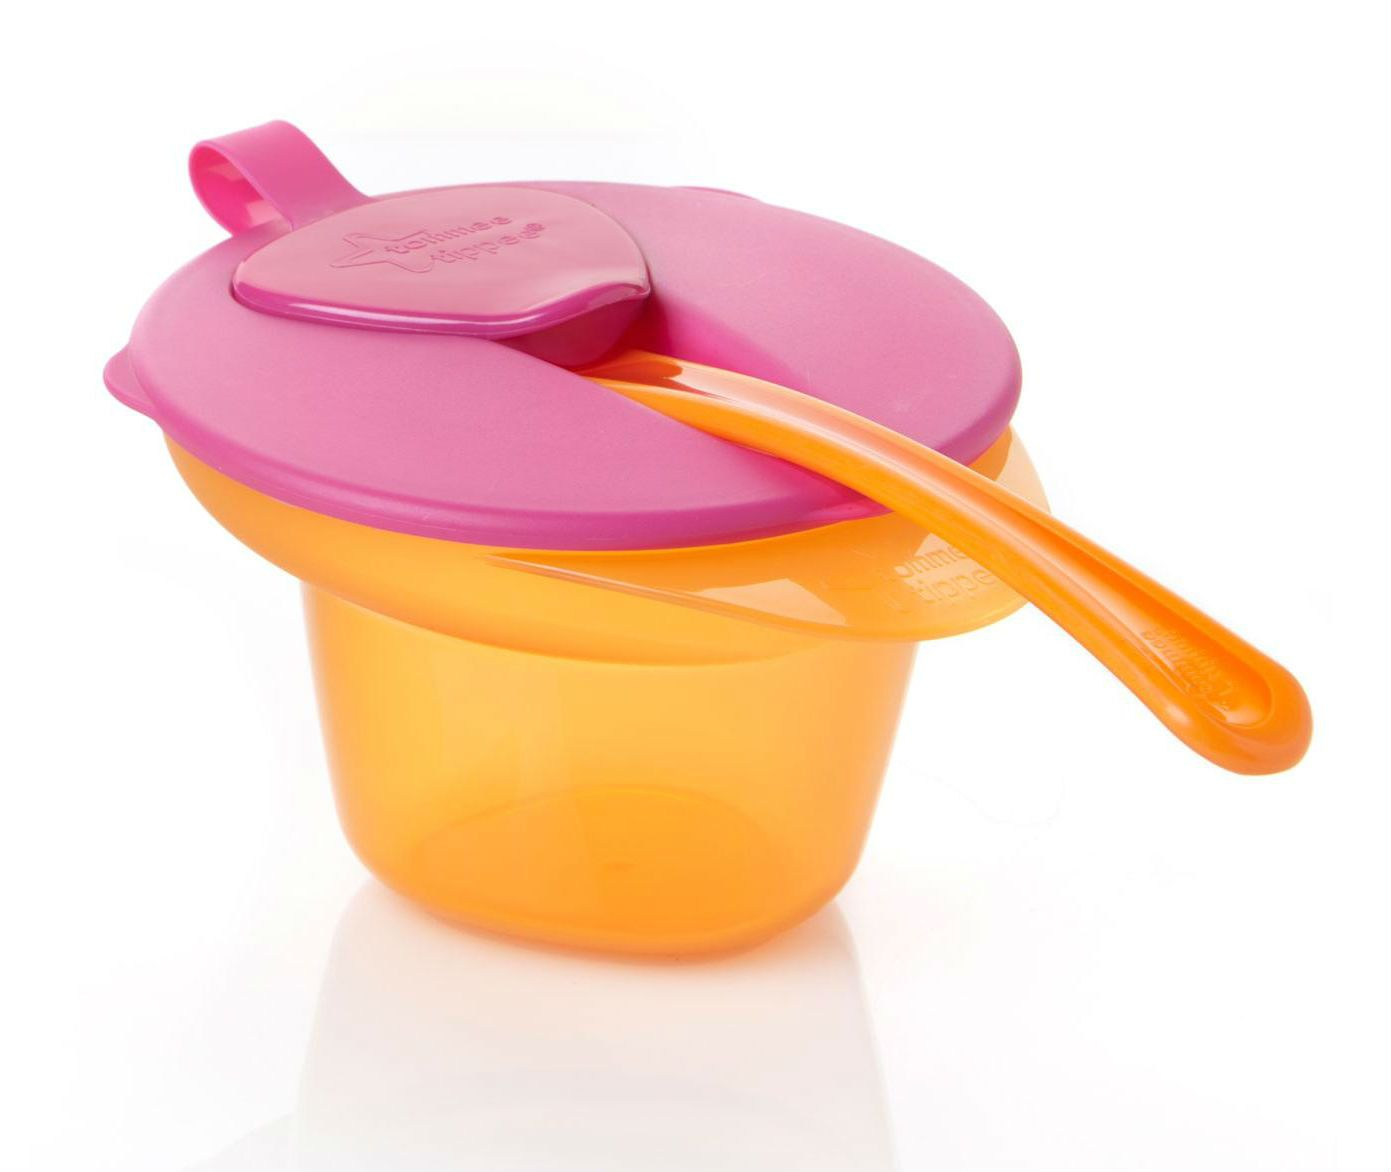 Image of Cool & Mash Bowl fra Tommee Tippee - Pink (4m+) (TT-FED13_Pink)